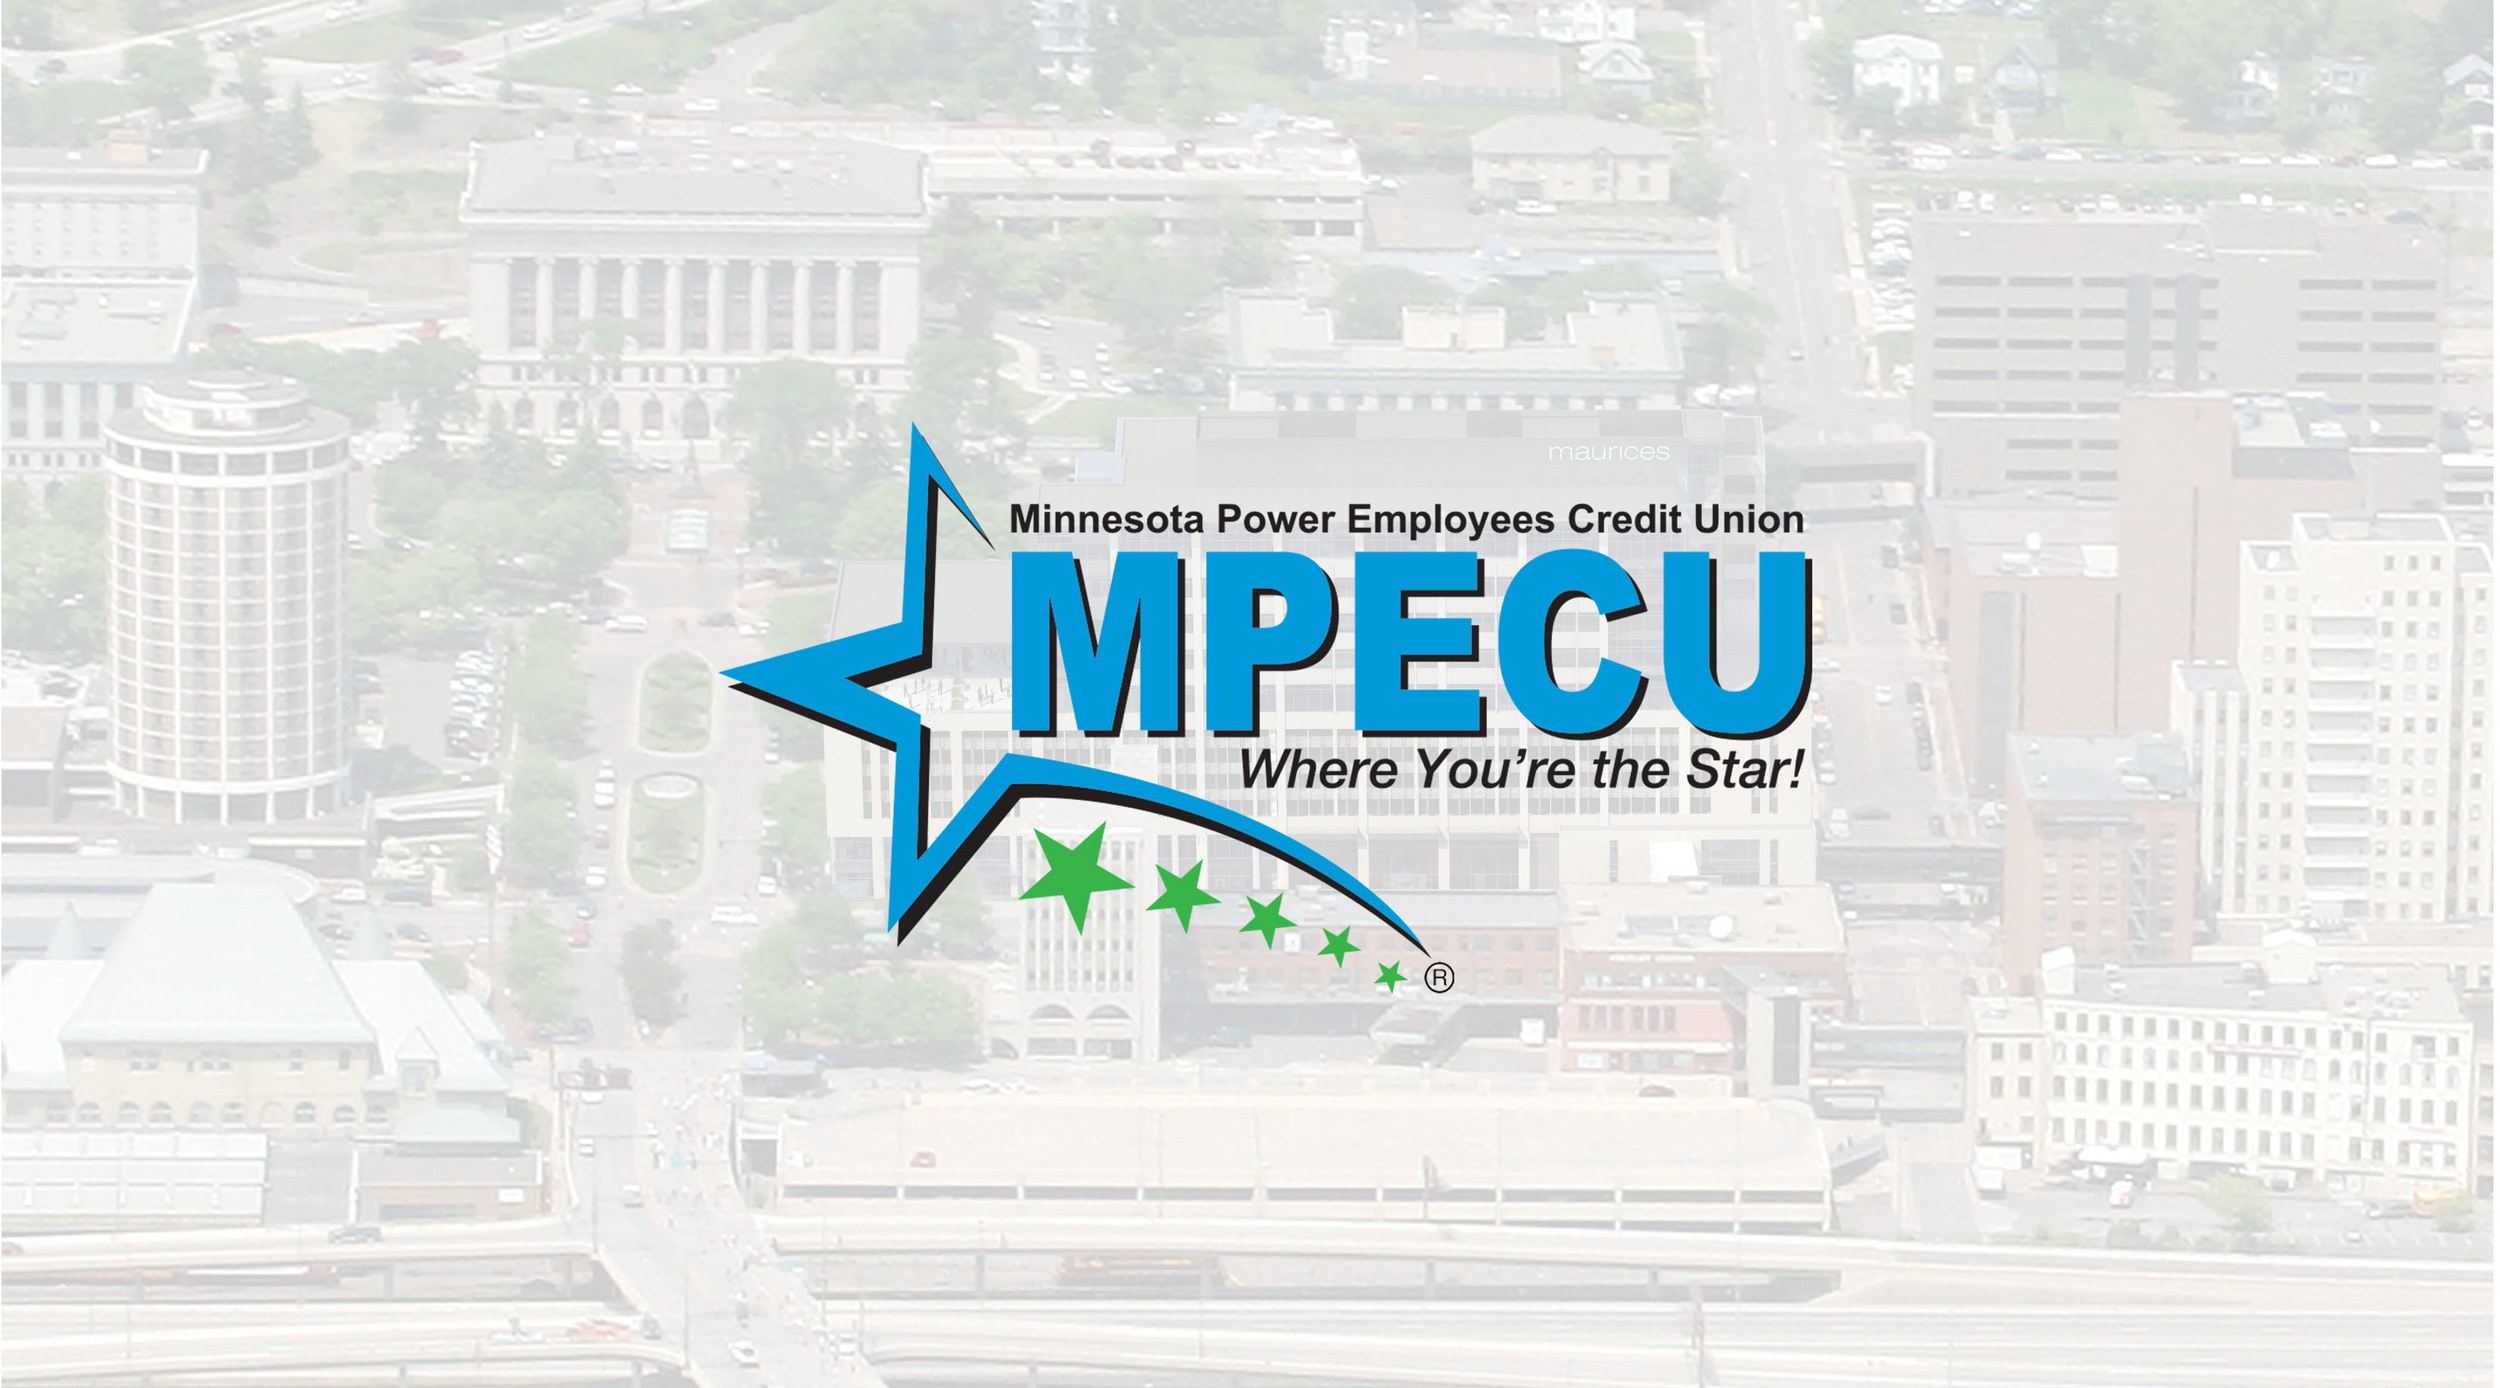 MINNESOTA POWER EMPLOYEES CREDIT UNION                                                     COMMERCIAL   425 WEST SUPERIOR STREET   DULUTH                                                    PLANNED COMPLETION: FALL 2016